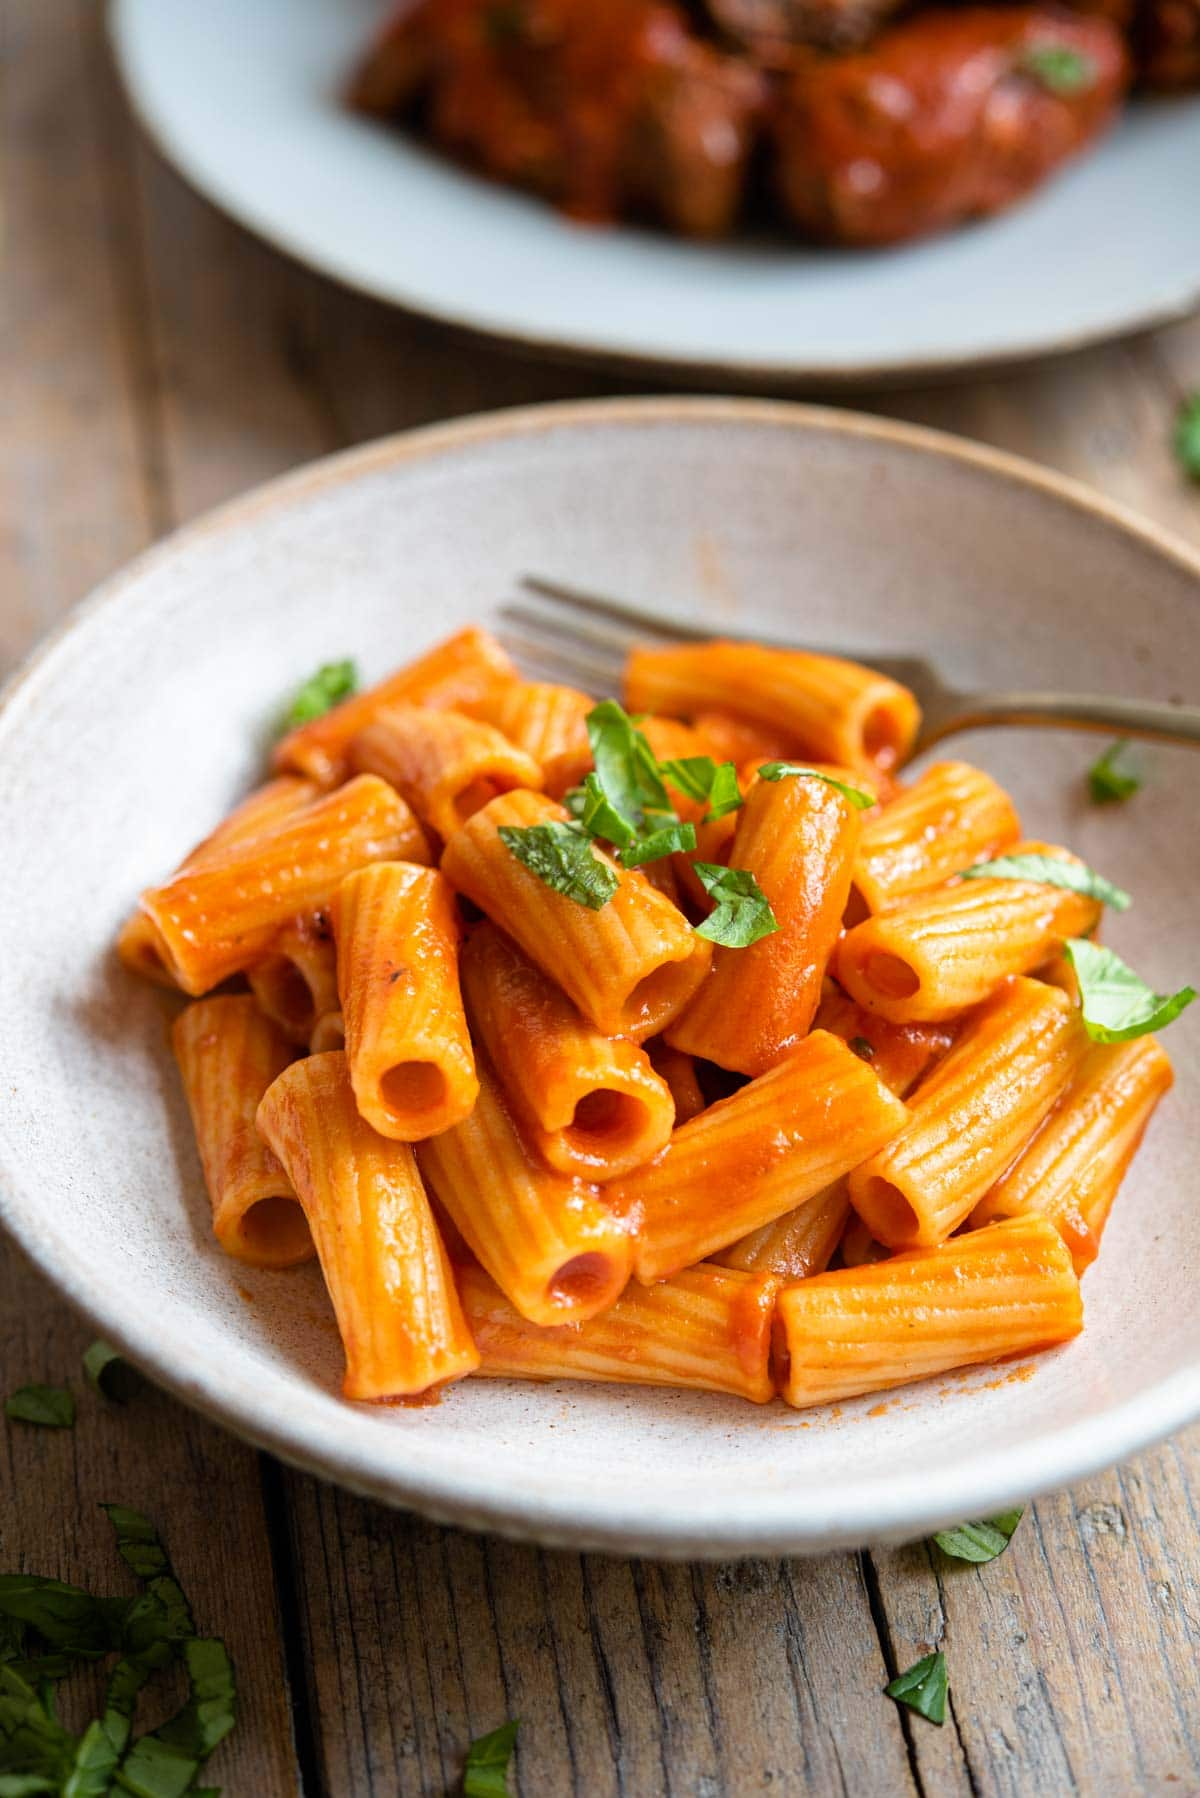 A side shot of pasta with tomato sauce in a bowl